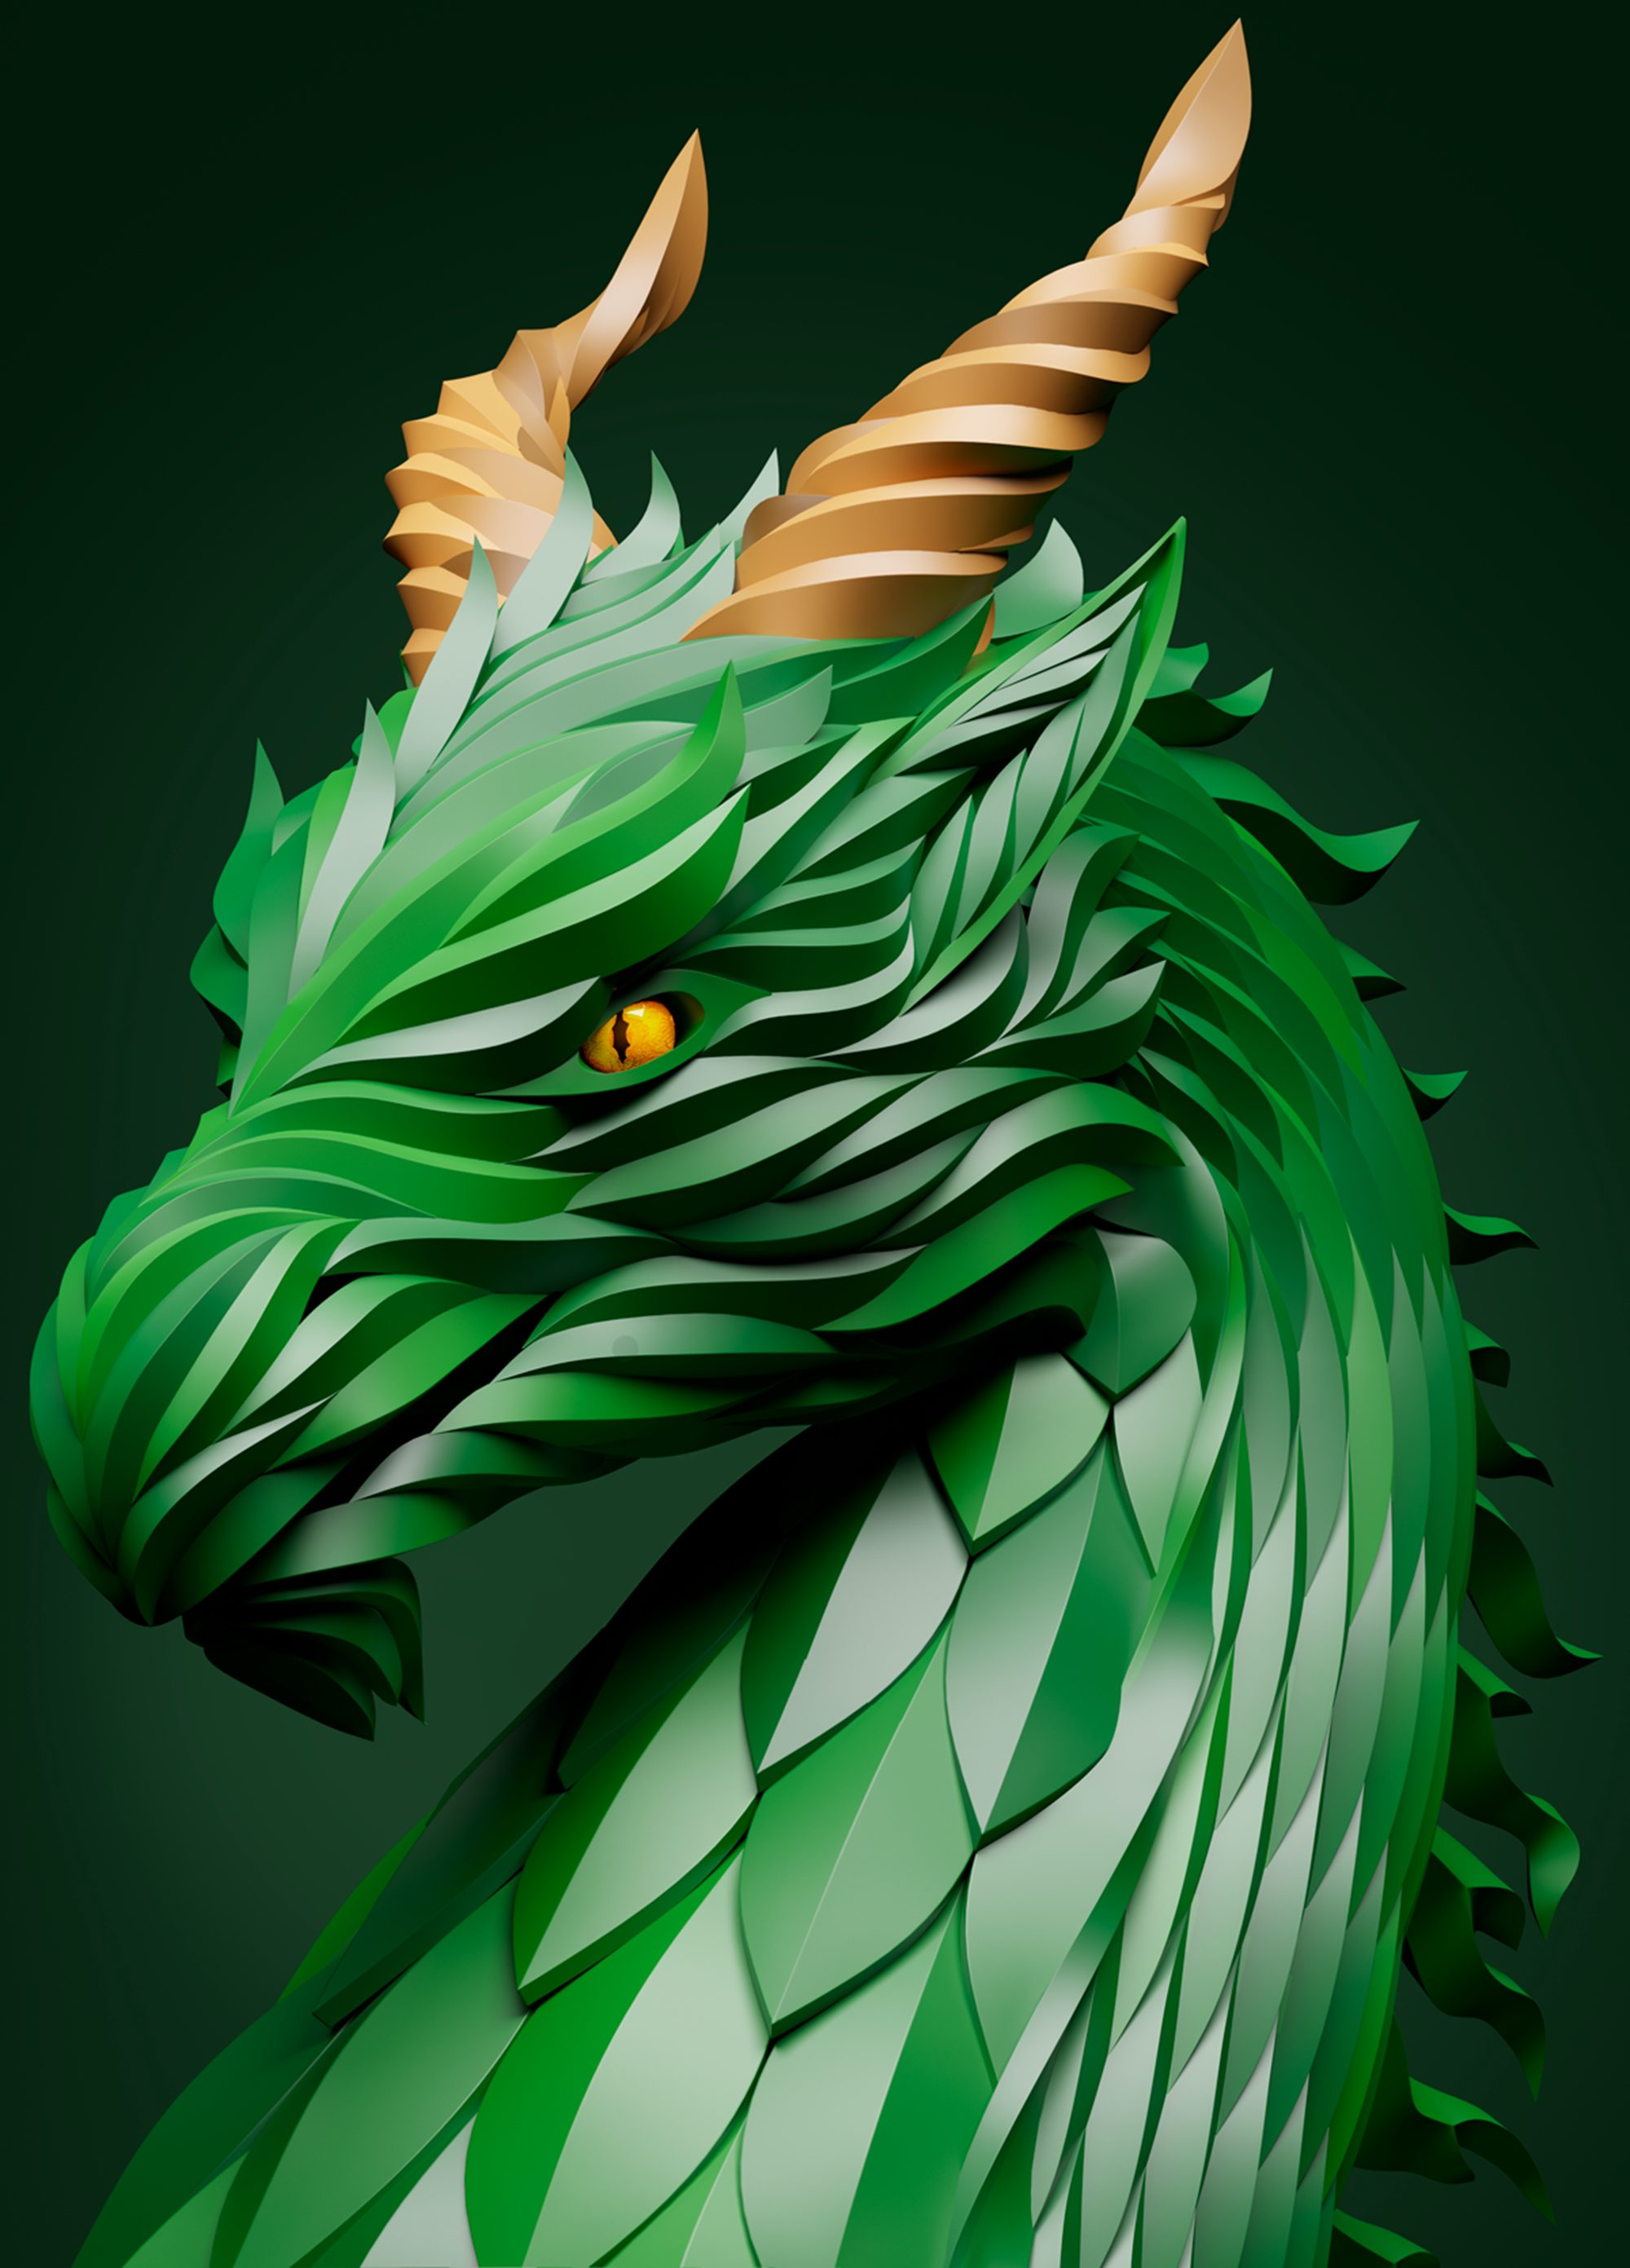 green dragon 3d art, digital art, epic